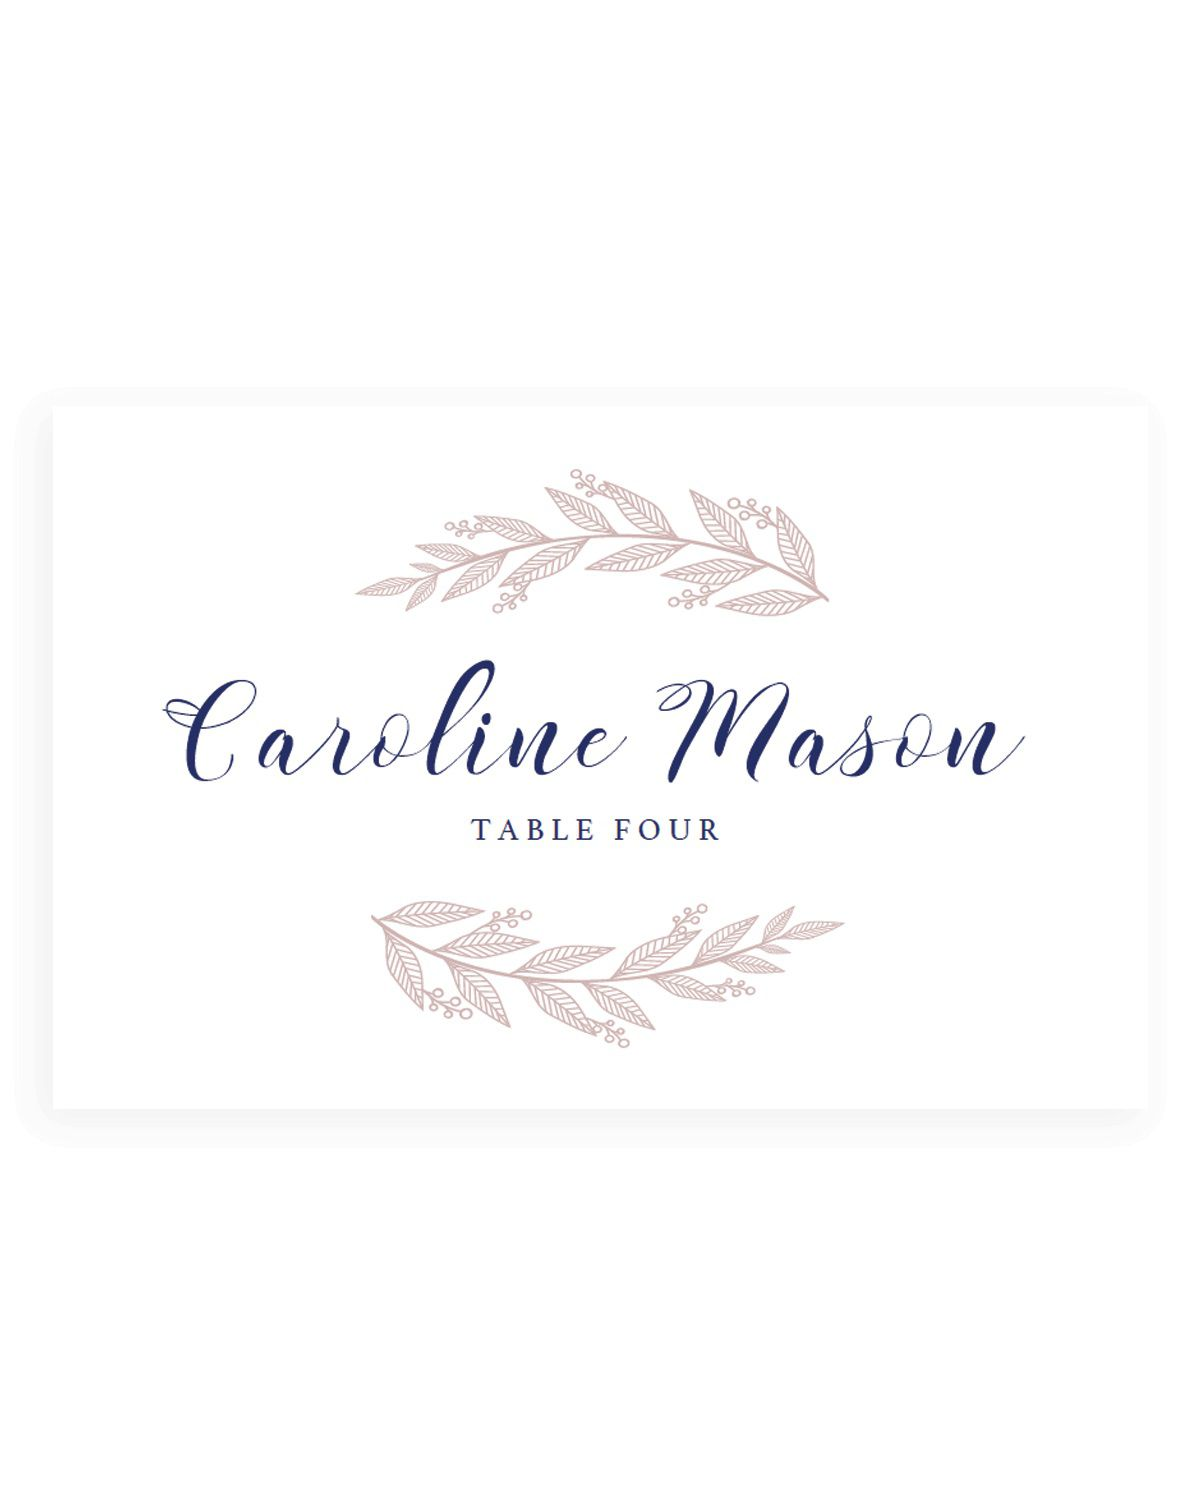 001 Surprising Wedding Name Card Template High Def  Templates For Table Place FreeFull